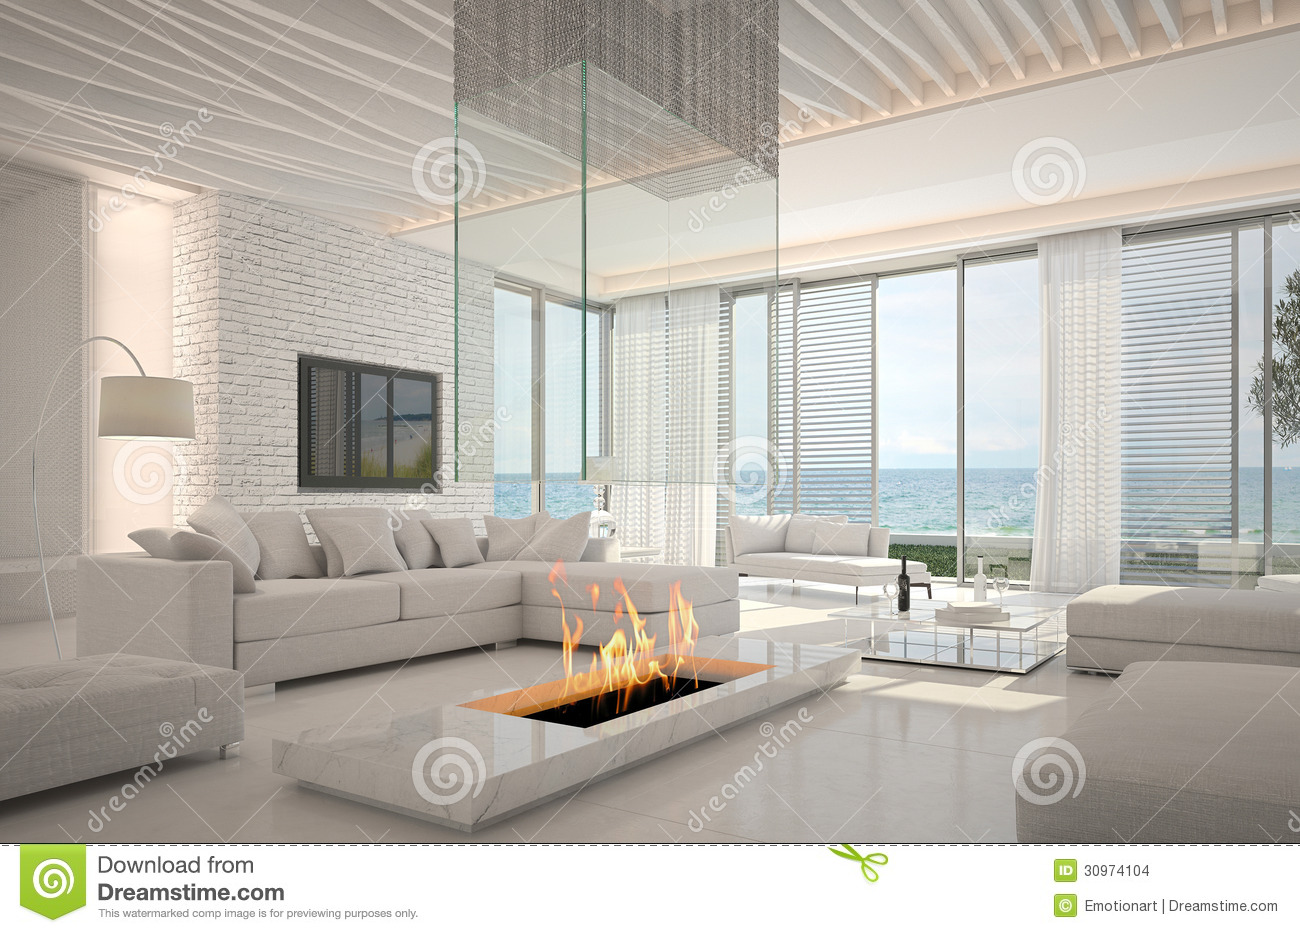 Amazing Living Rooms Amazing Loft Living Room Interior With Seascape View Stock